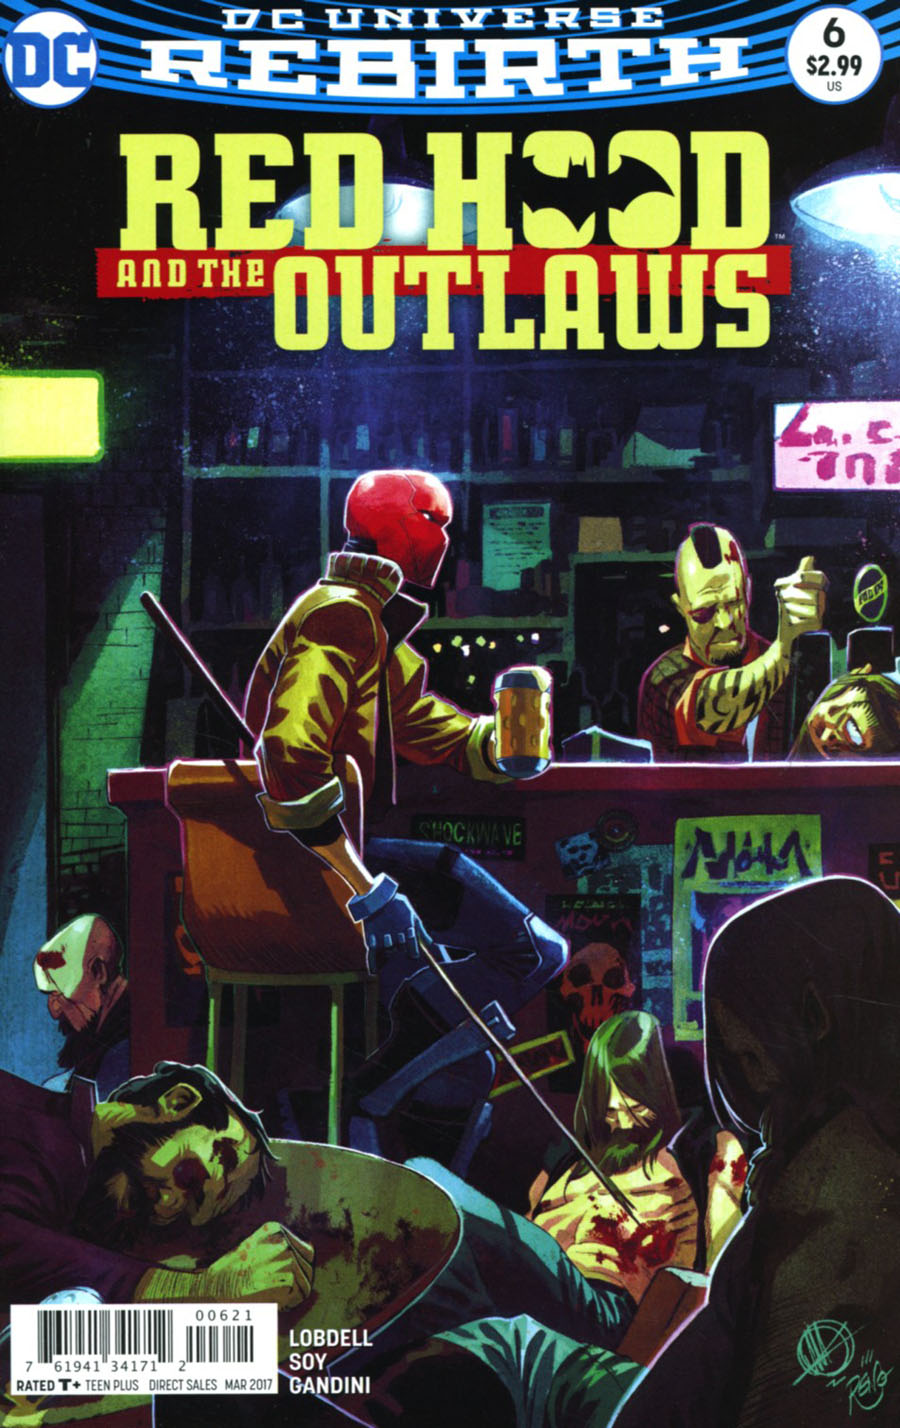 Red Hood And The Outlaws Vol 2 #6 Cover B Variant Matteo Scalera Cover